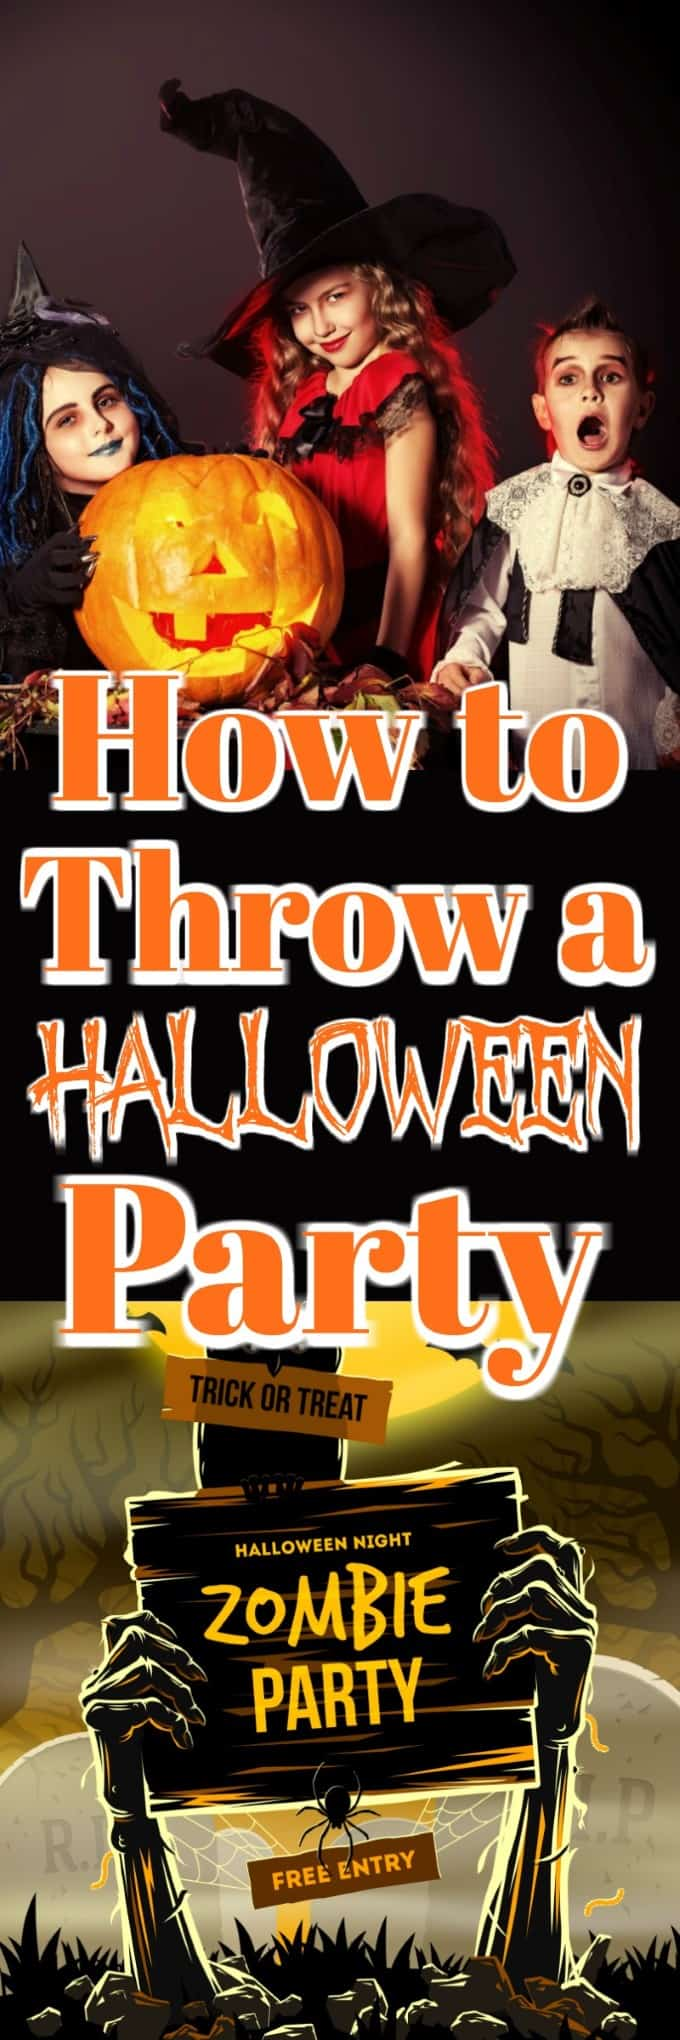 How to Throw a Halloween Party will help guide you through the activities, food, costumes, decor, music and more!! #HalloweenParty #Halloween